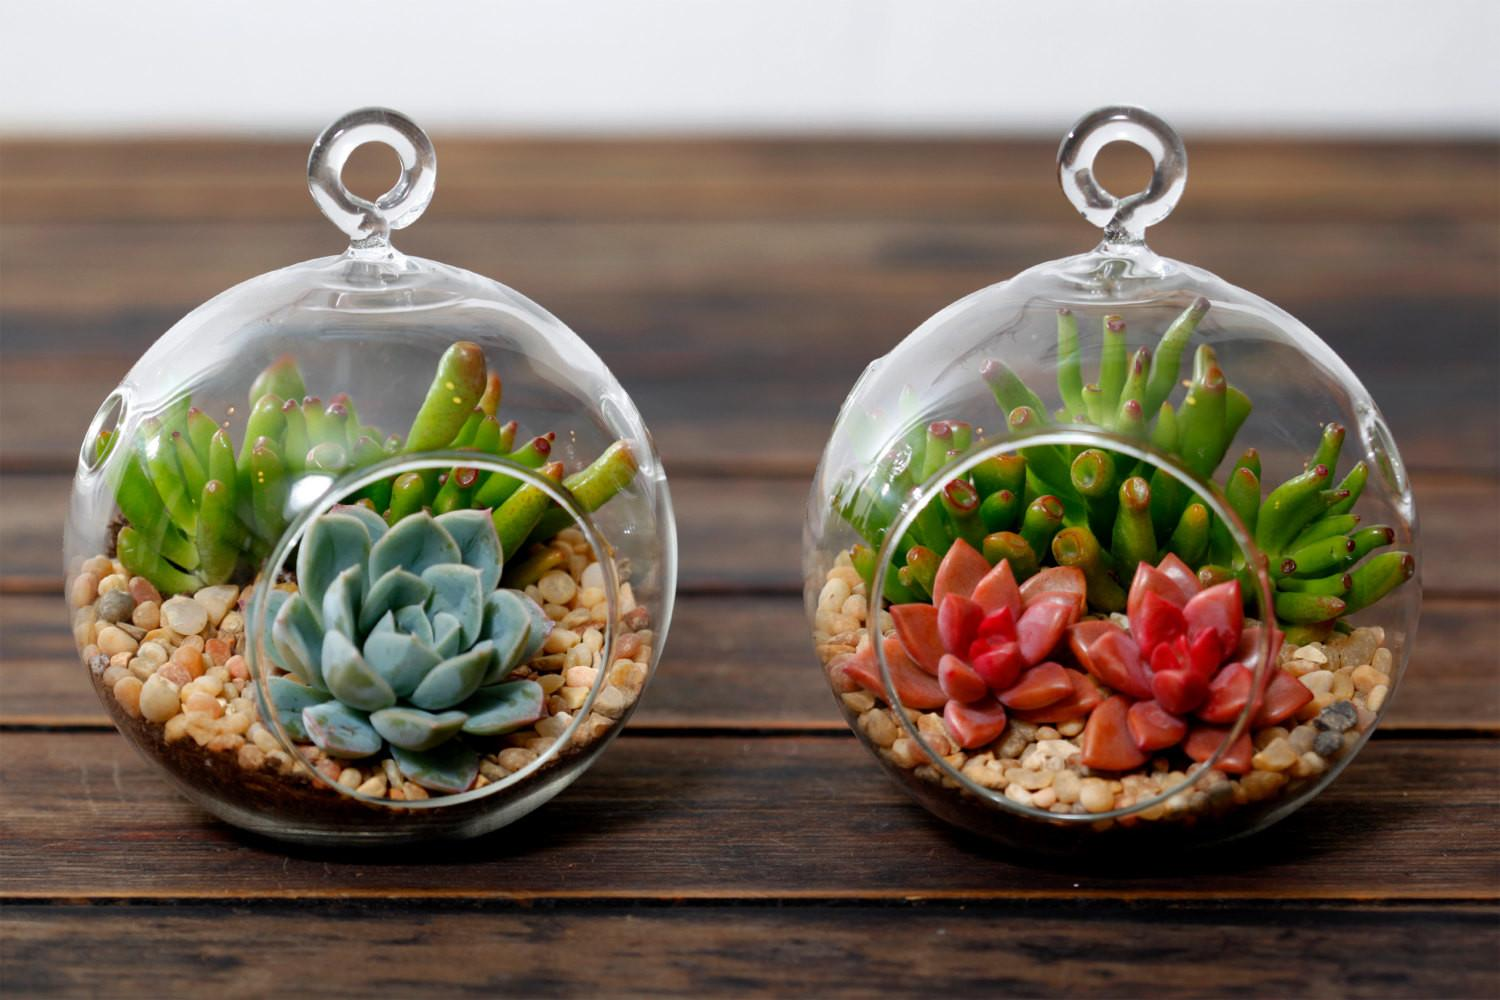 Let Make Diy Terrarium Indoindians